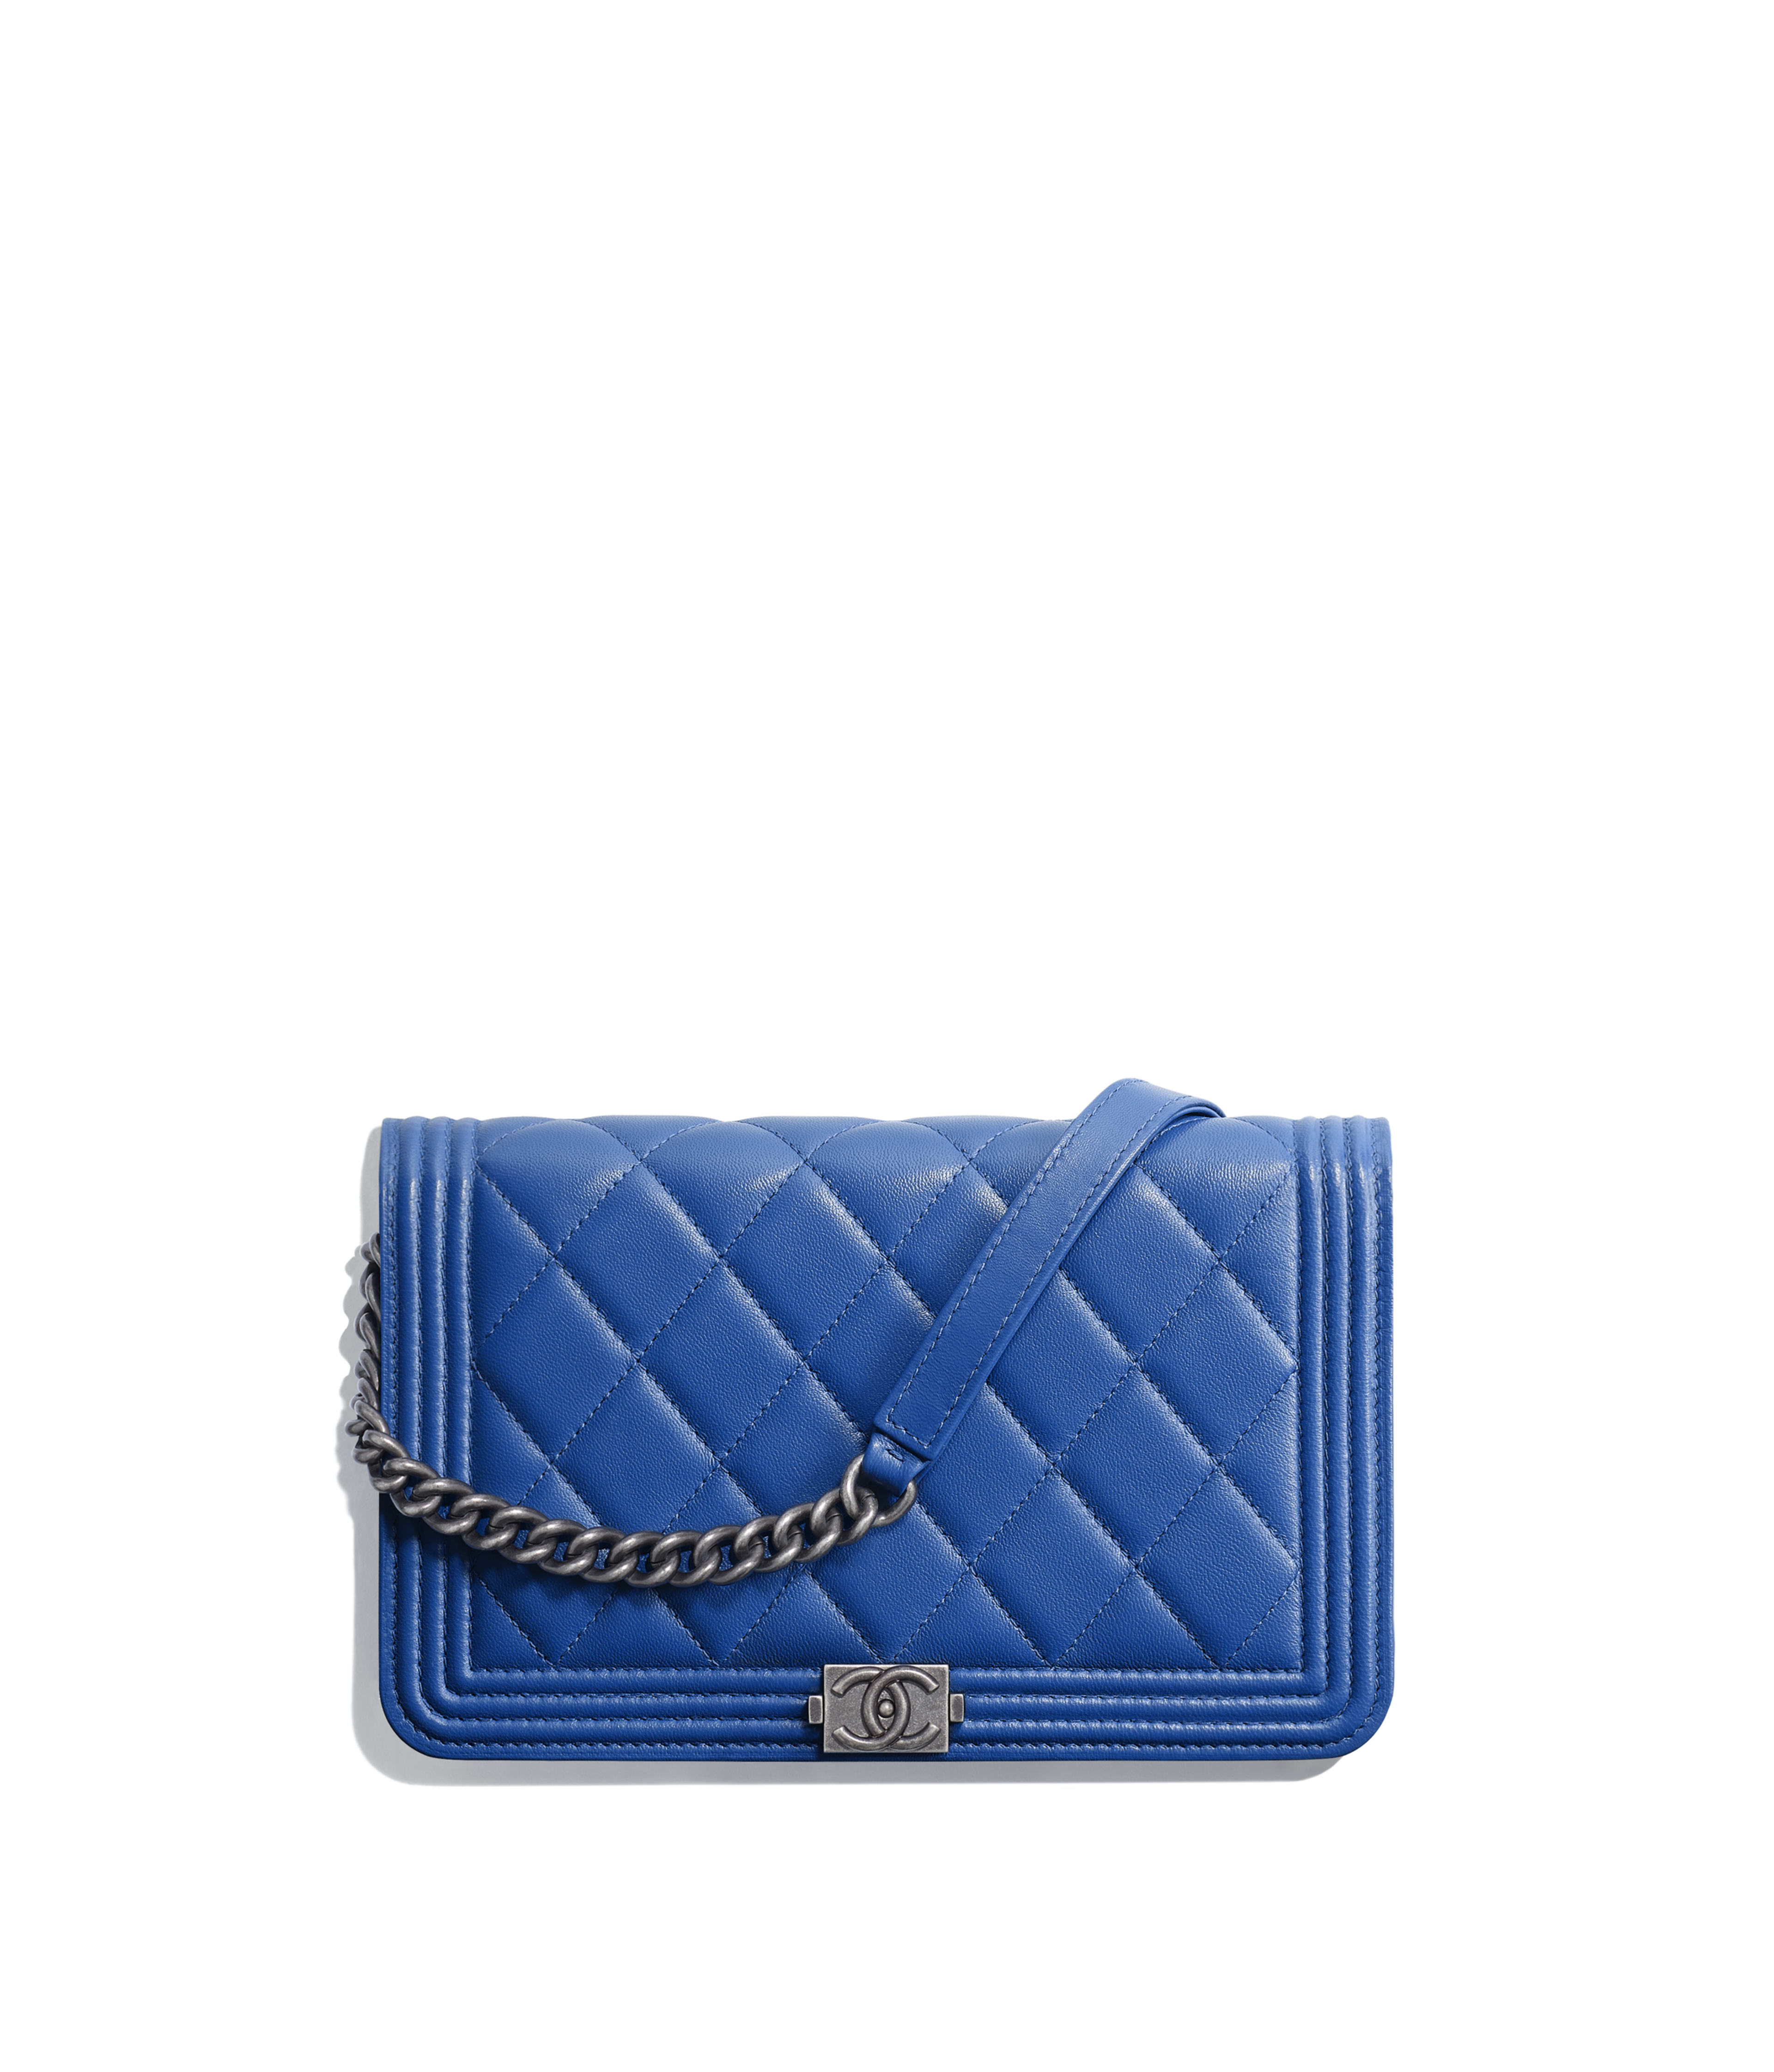 43f51a32e0e6 BOY CHANEL Wallet on Chain Lambskin & Ruthenium-Finish Metal, Blue Ref.  A81969Y046385B646